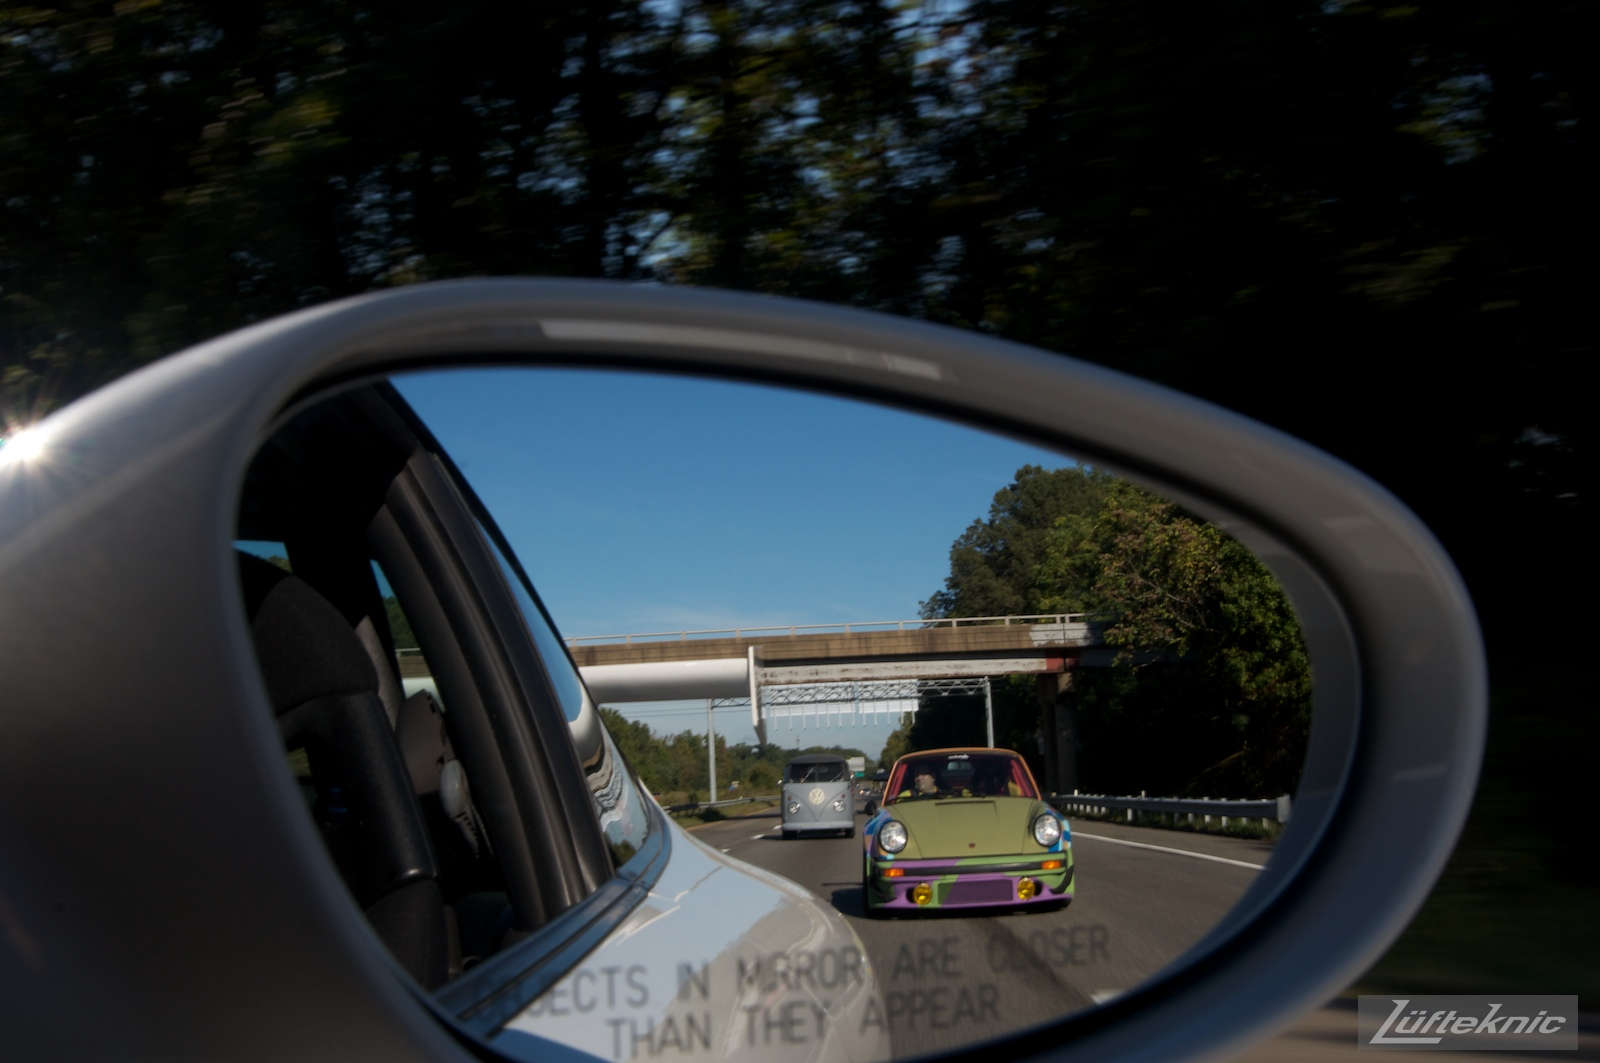 Side view mirror showing the Lüfteknic #projectstuka Porsche 930 Turbo driving to h2o international car show.